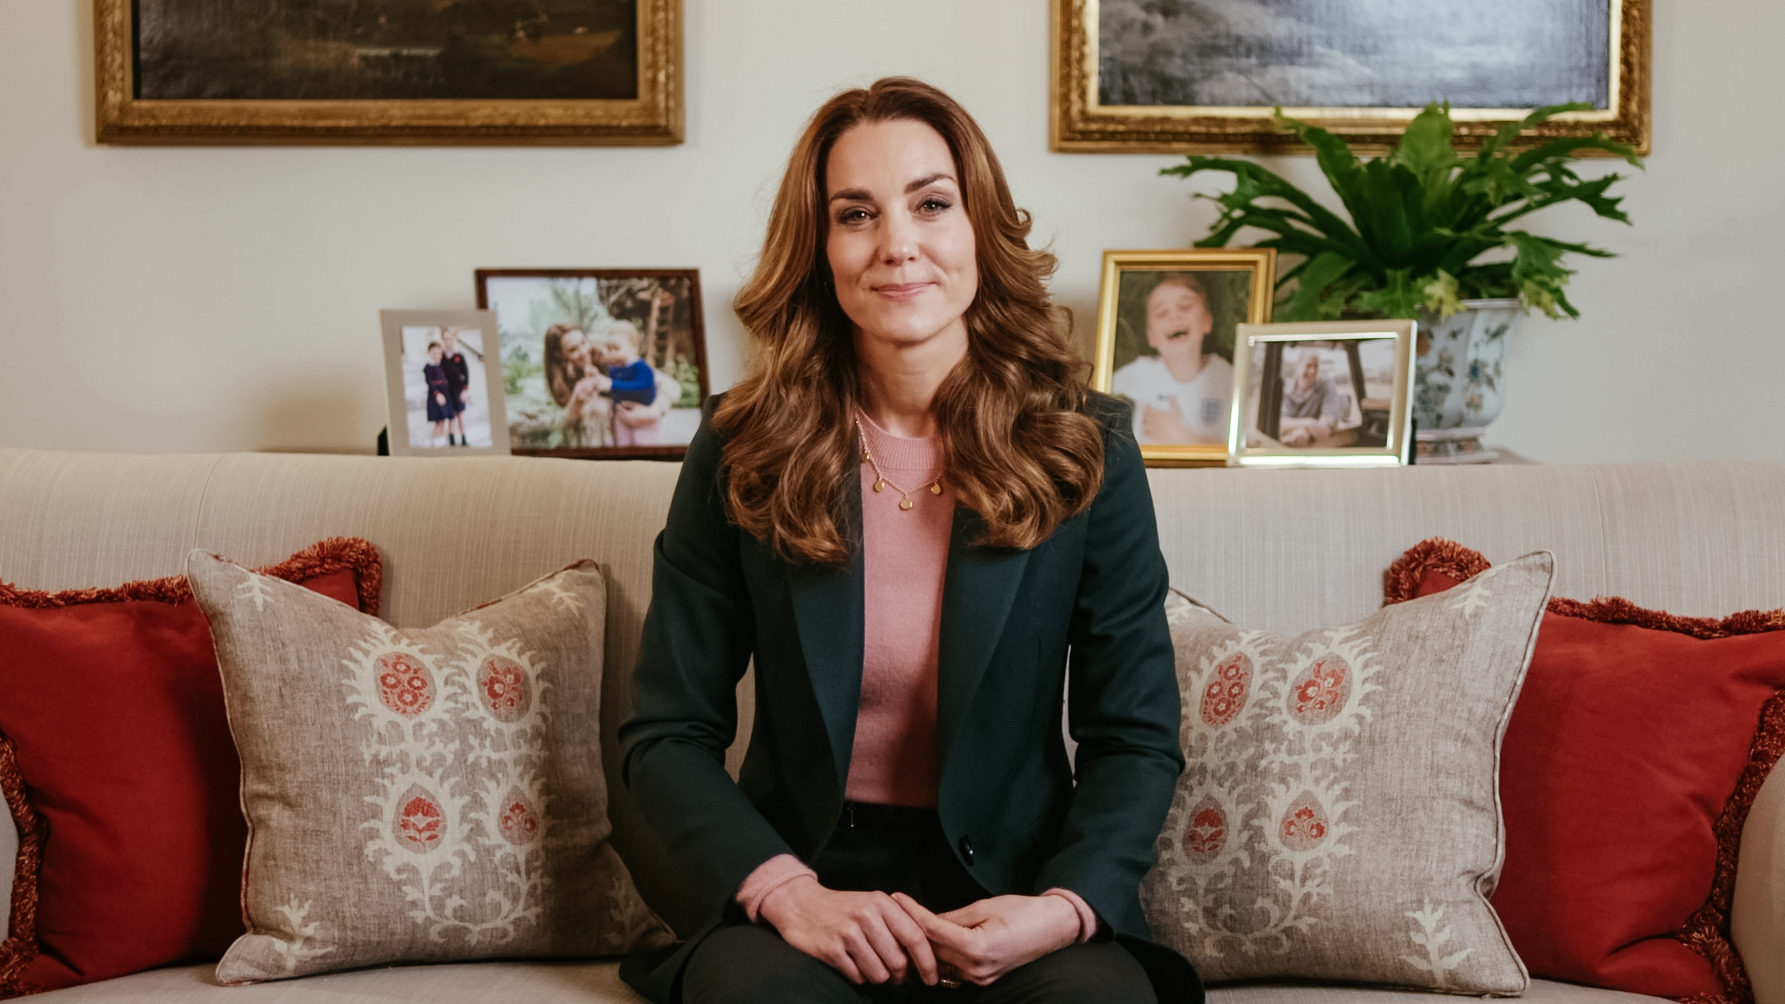 THE DUCHESS OF CAMBRIDGE UNVEILS FINDINGS OF BIGGEST EVER STUDY ON THE EARLY YEARS